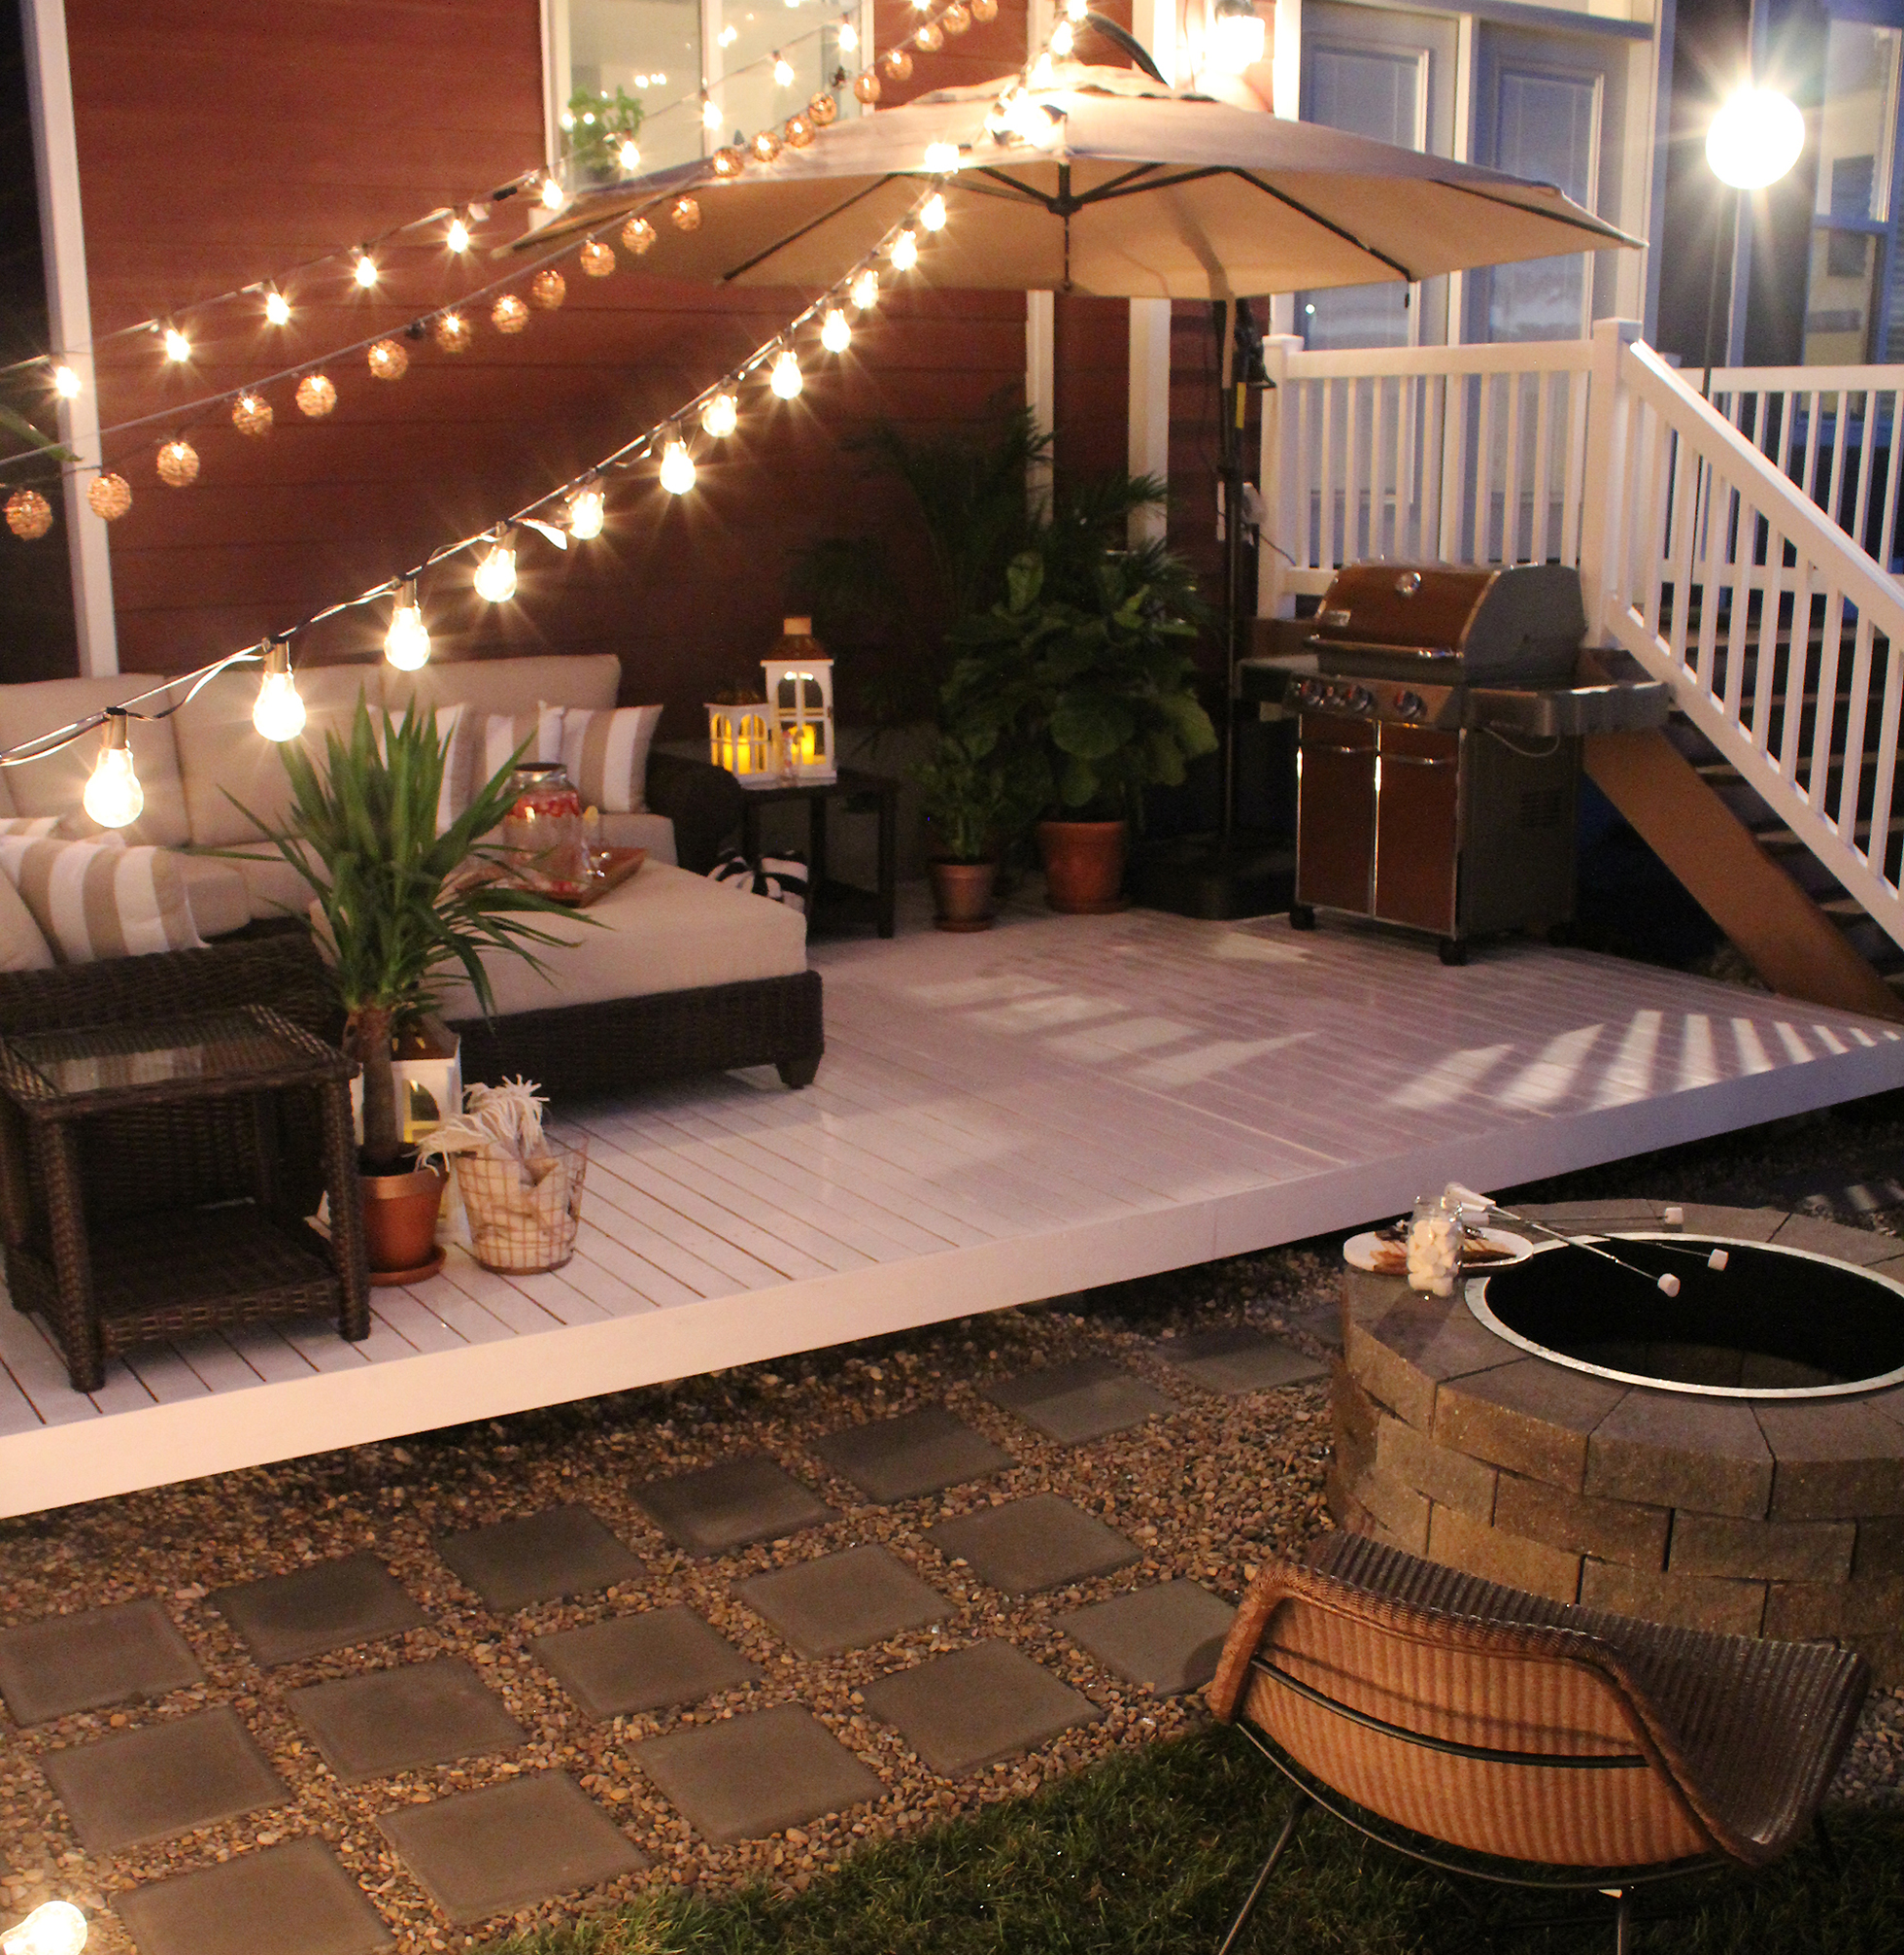 8 Simple And Easy Landscaping Ideas | HouseLogic on Basic Patio Ideas id=33034